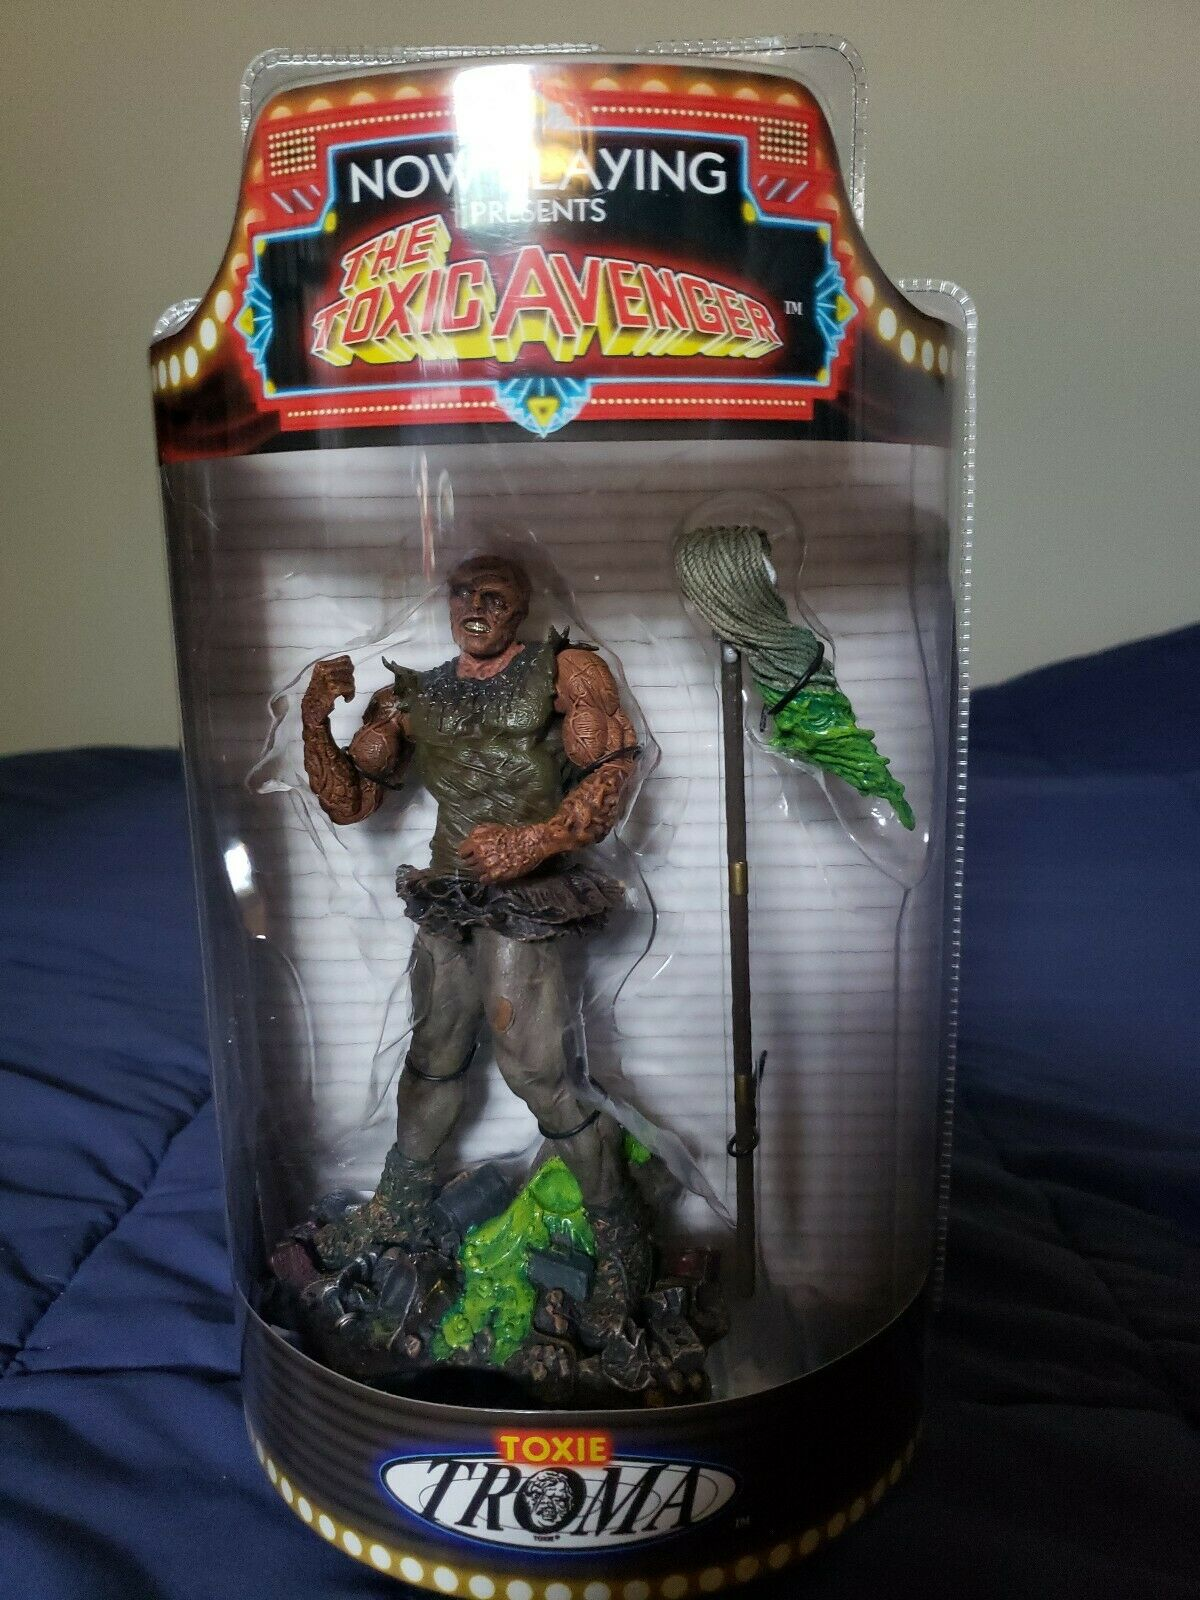 RARE  SOTA NOW PLAYING PRESENTS THE TOXIC AVENGER TOXIE FIGURE TROMA 2004